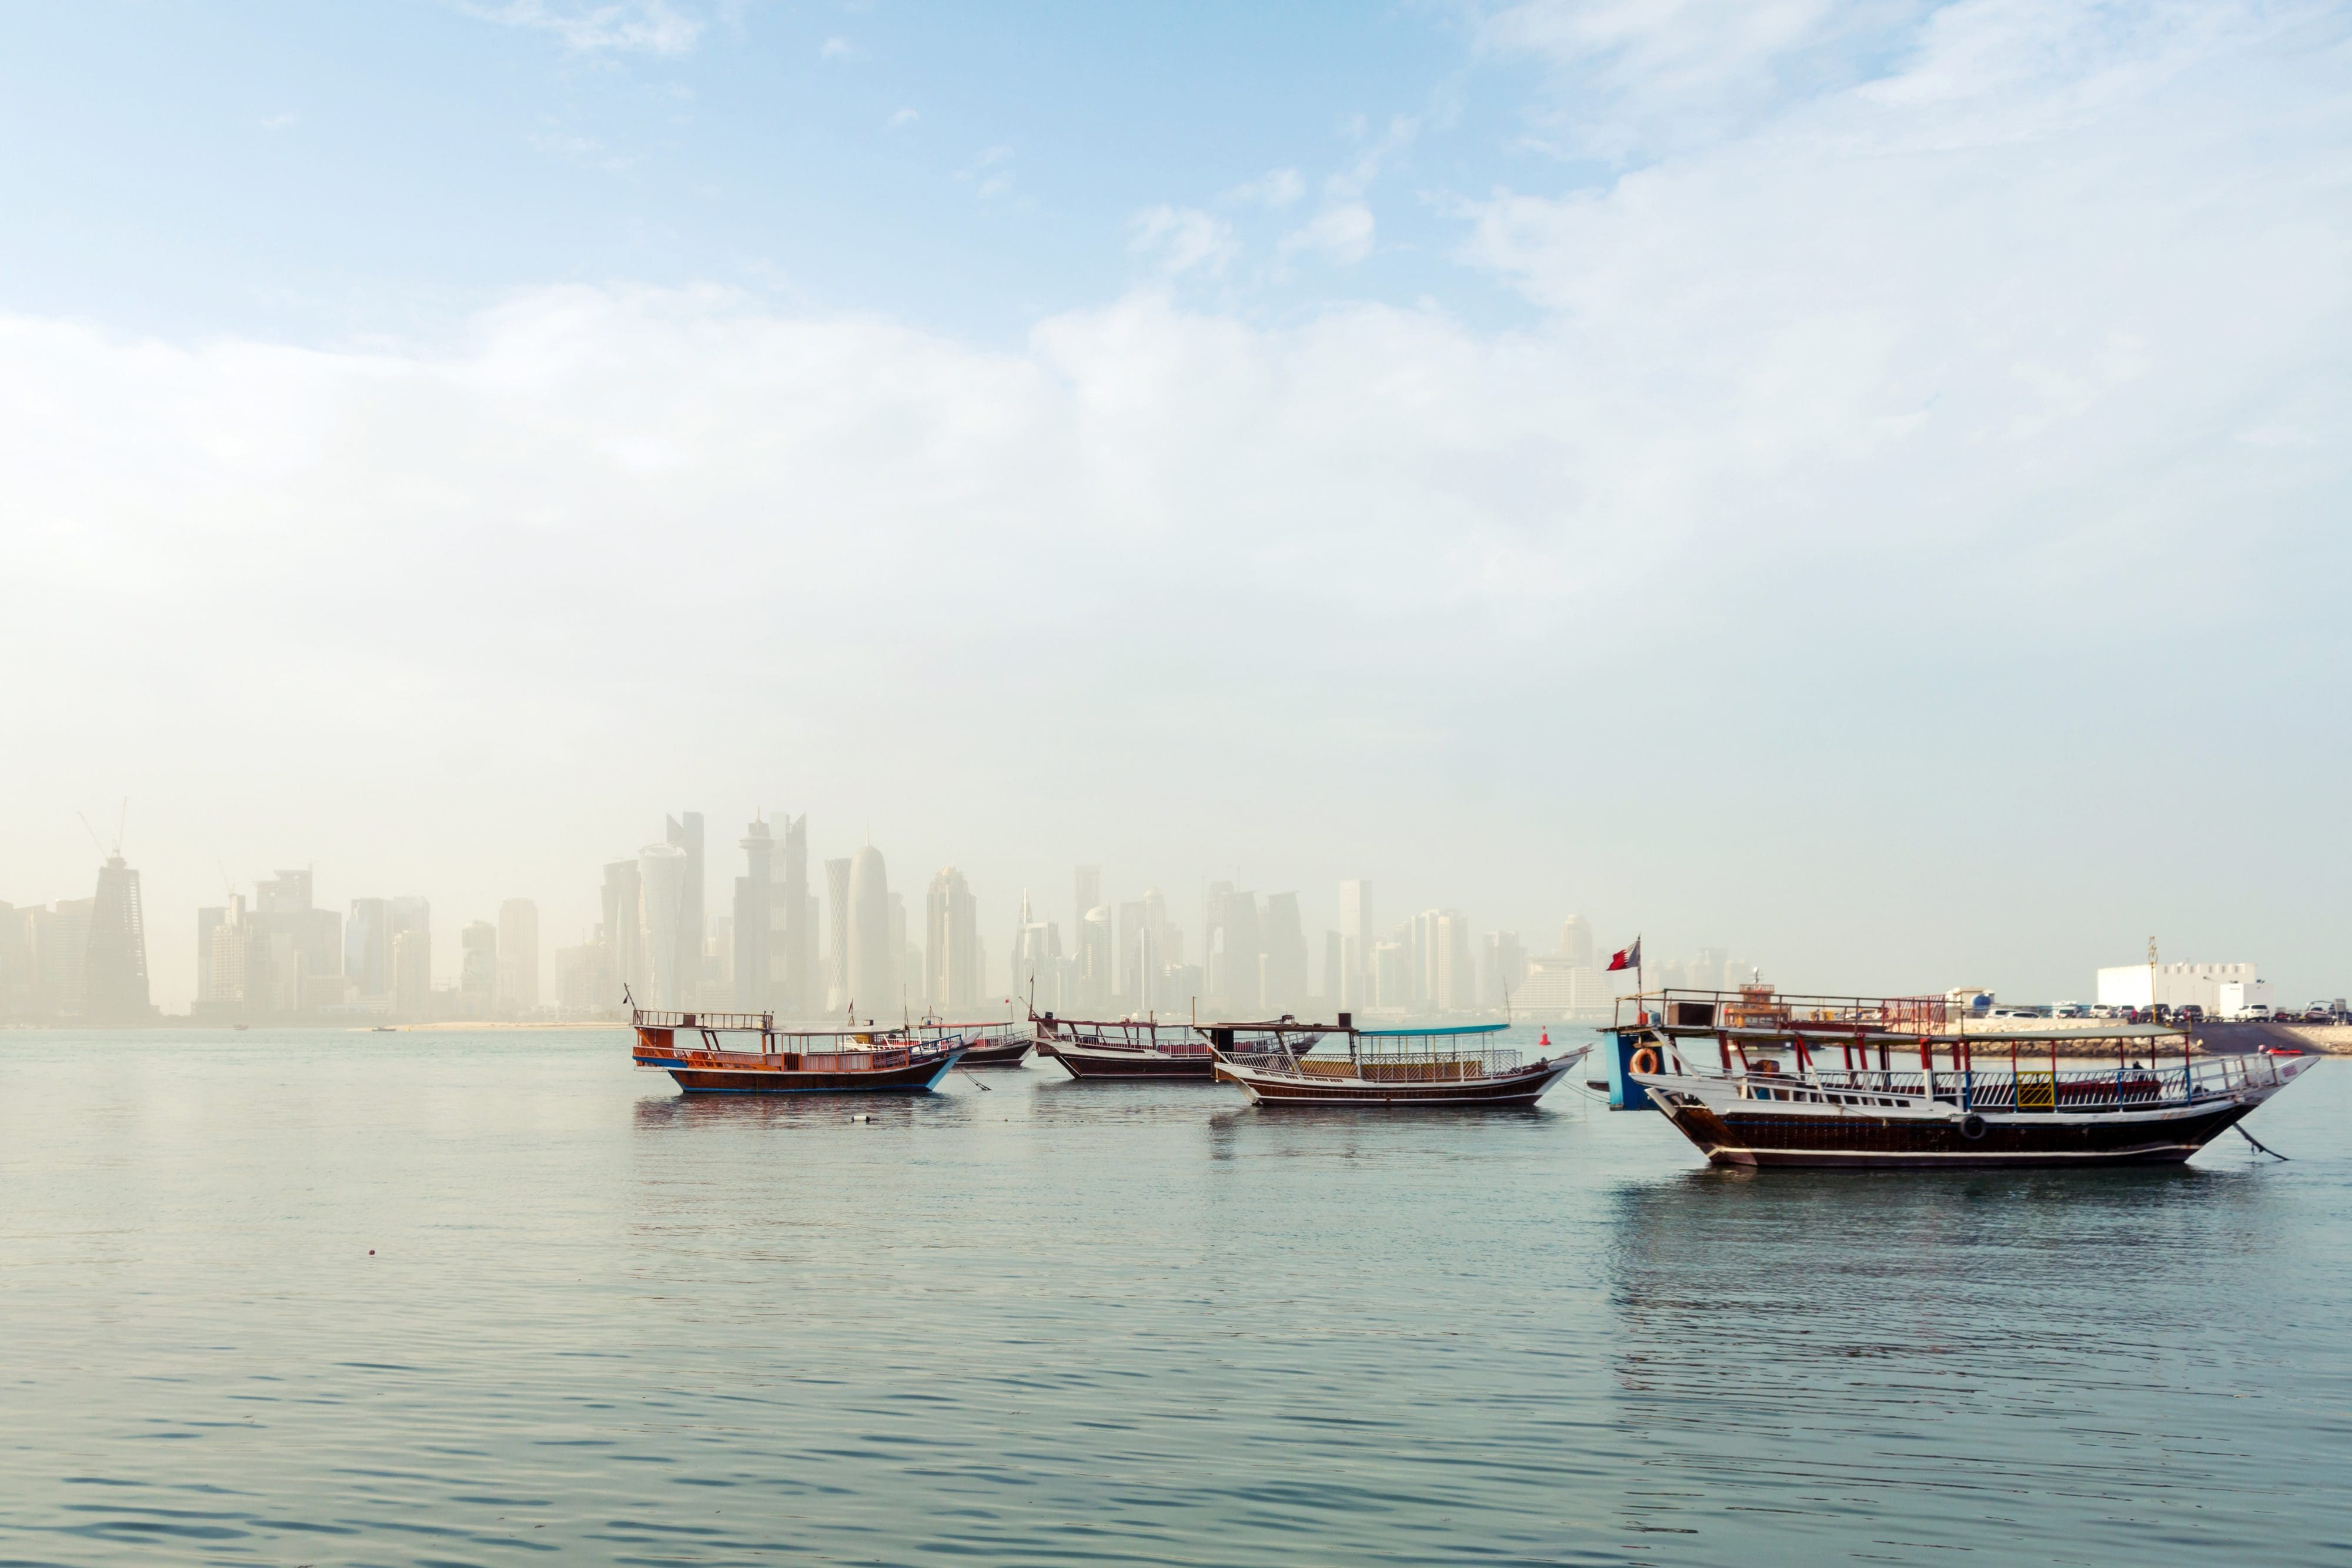 Wooden dhows on the Arabian sea, backdropped by the Doha skyline